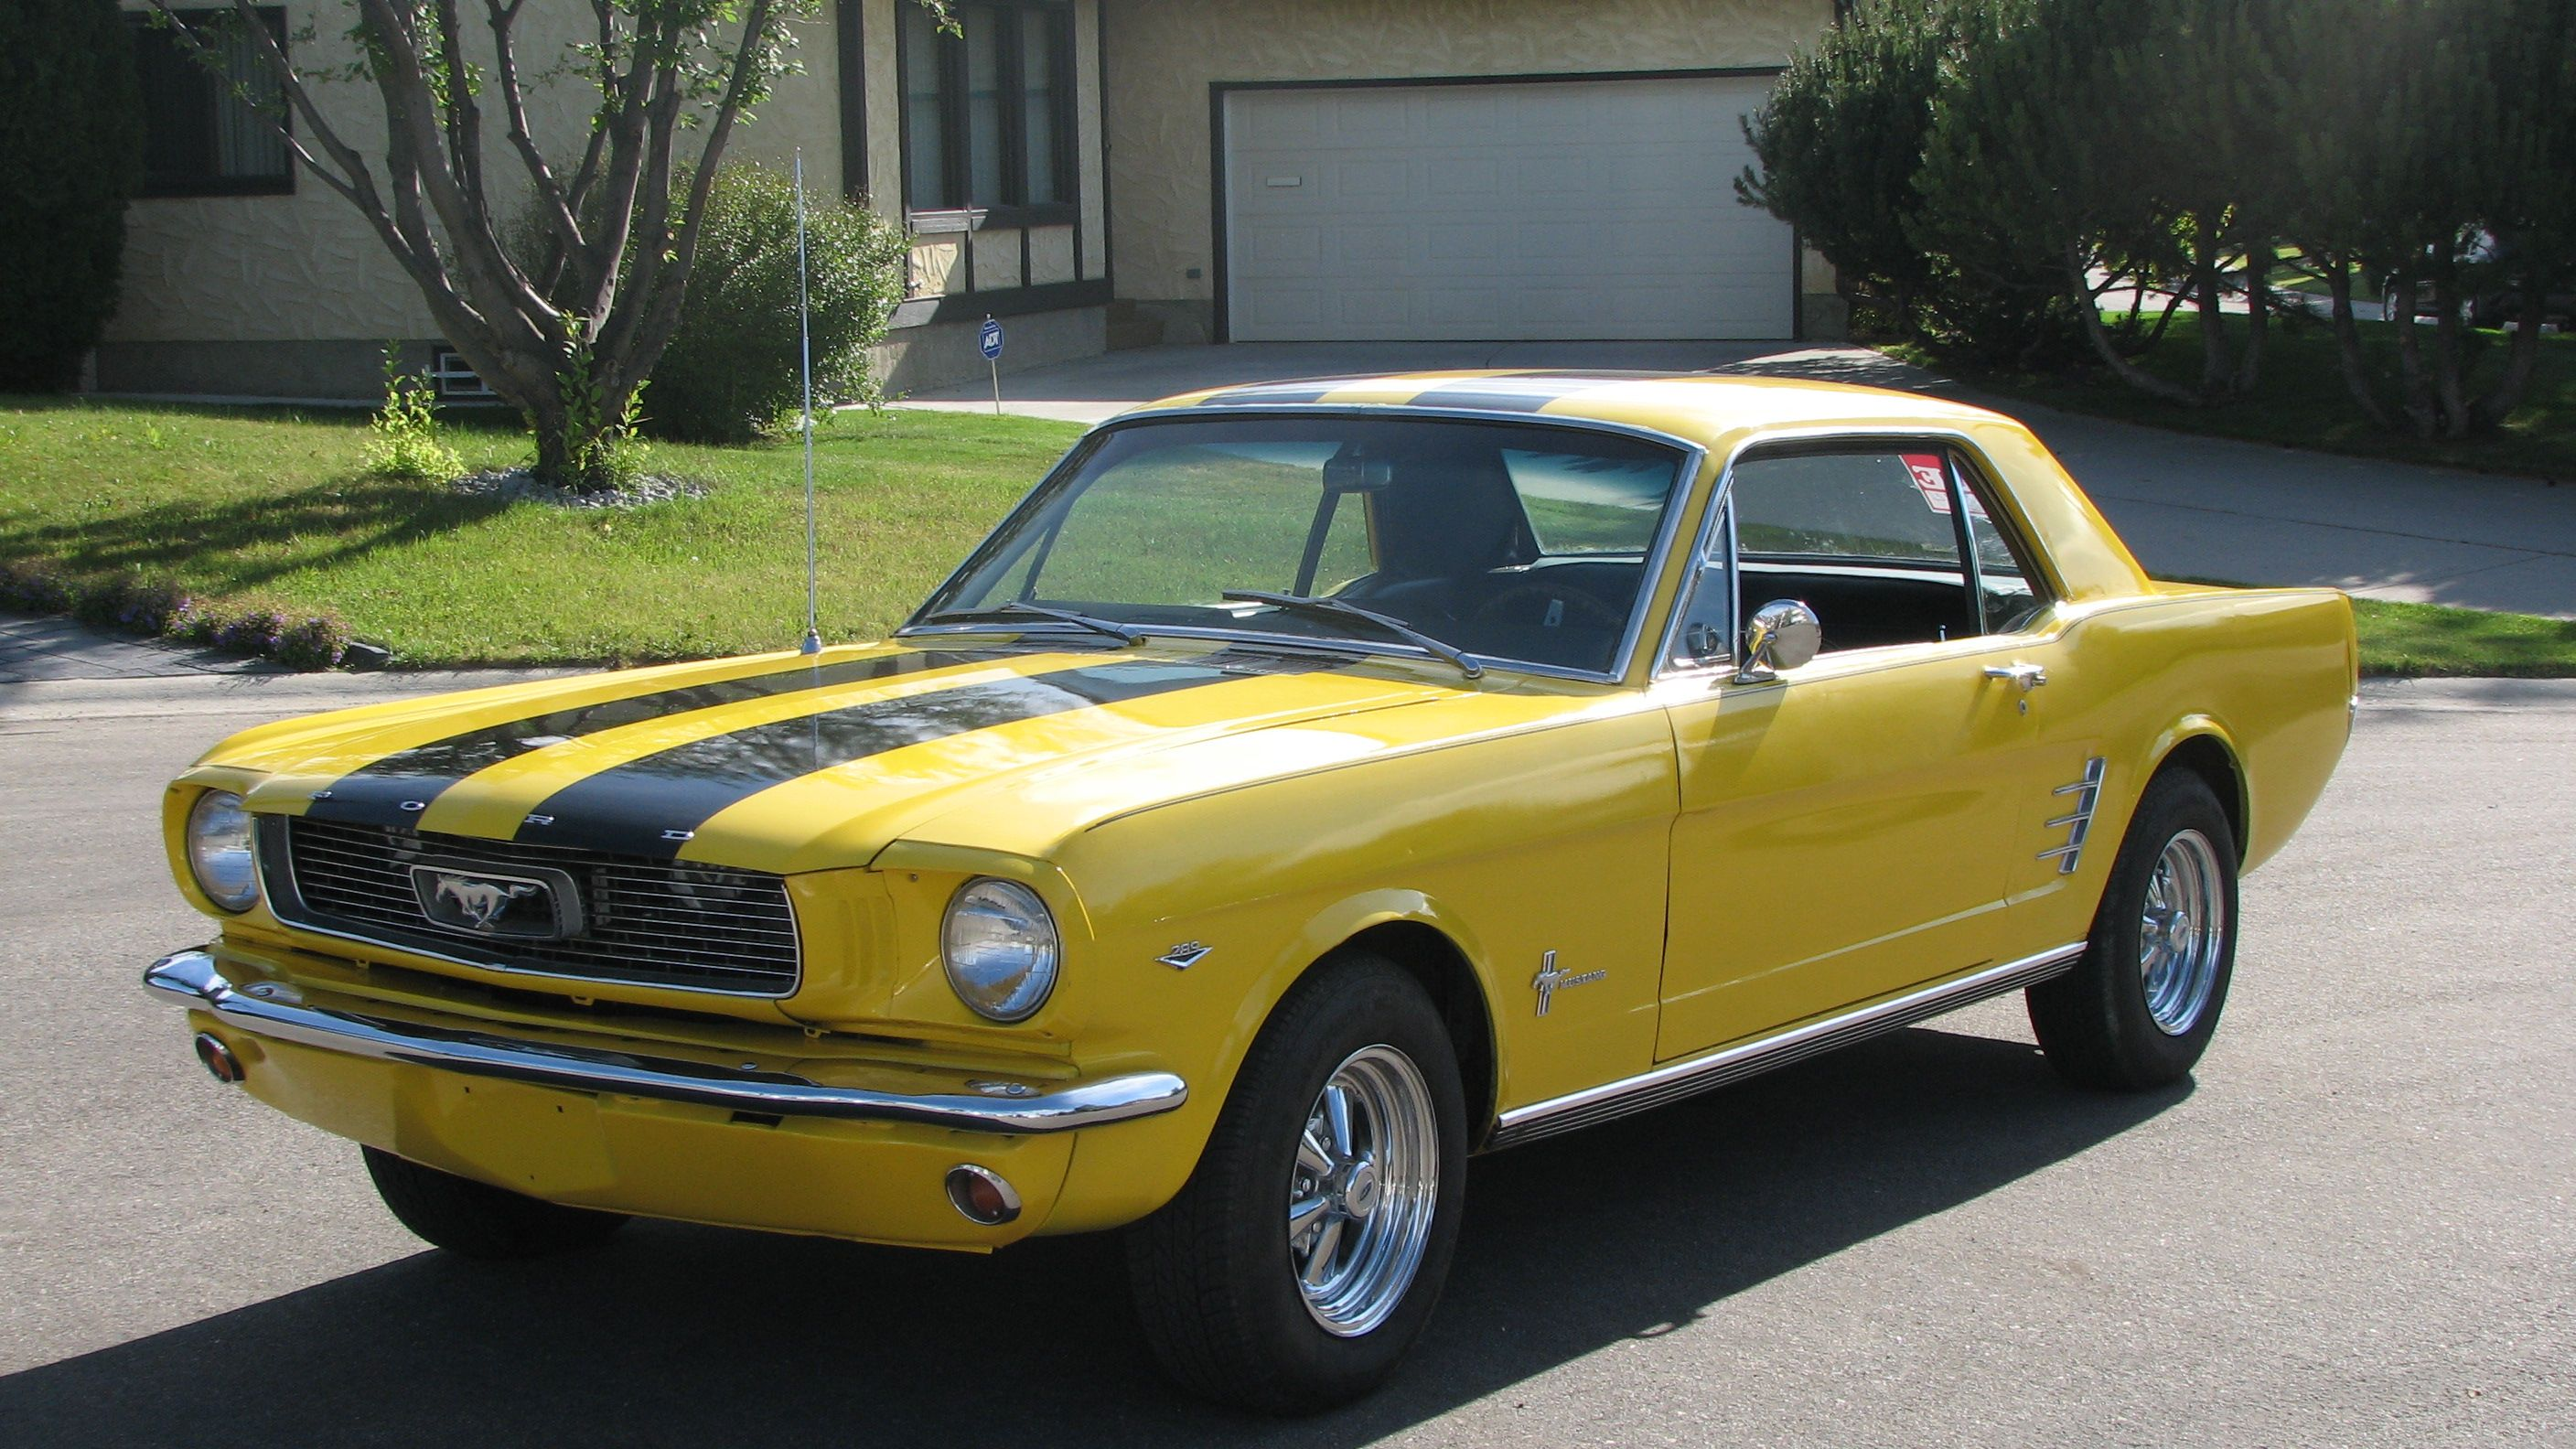 1966 Ford Mustang Coupe | Ford Mustang | Pinterest | Ford mustang ...